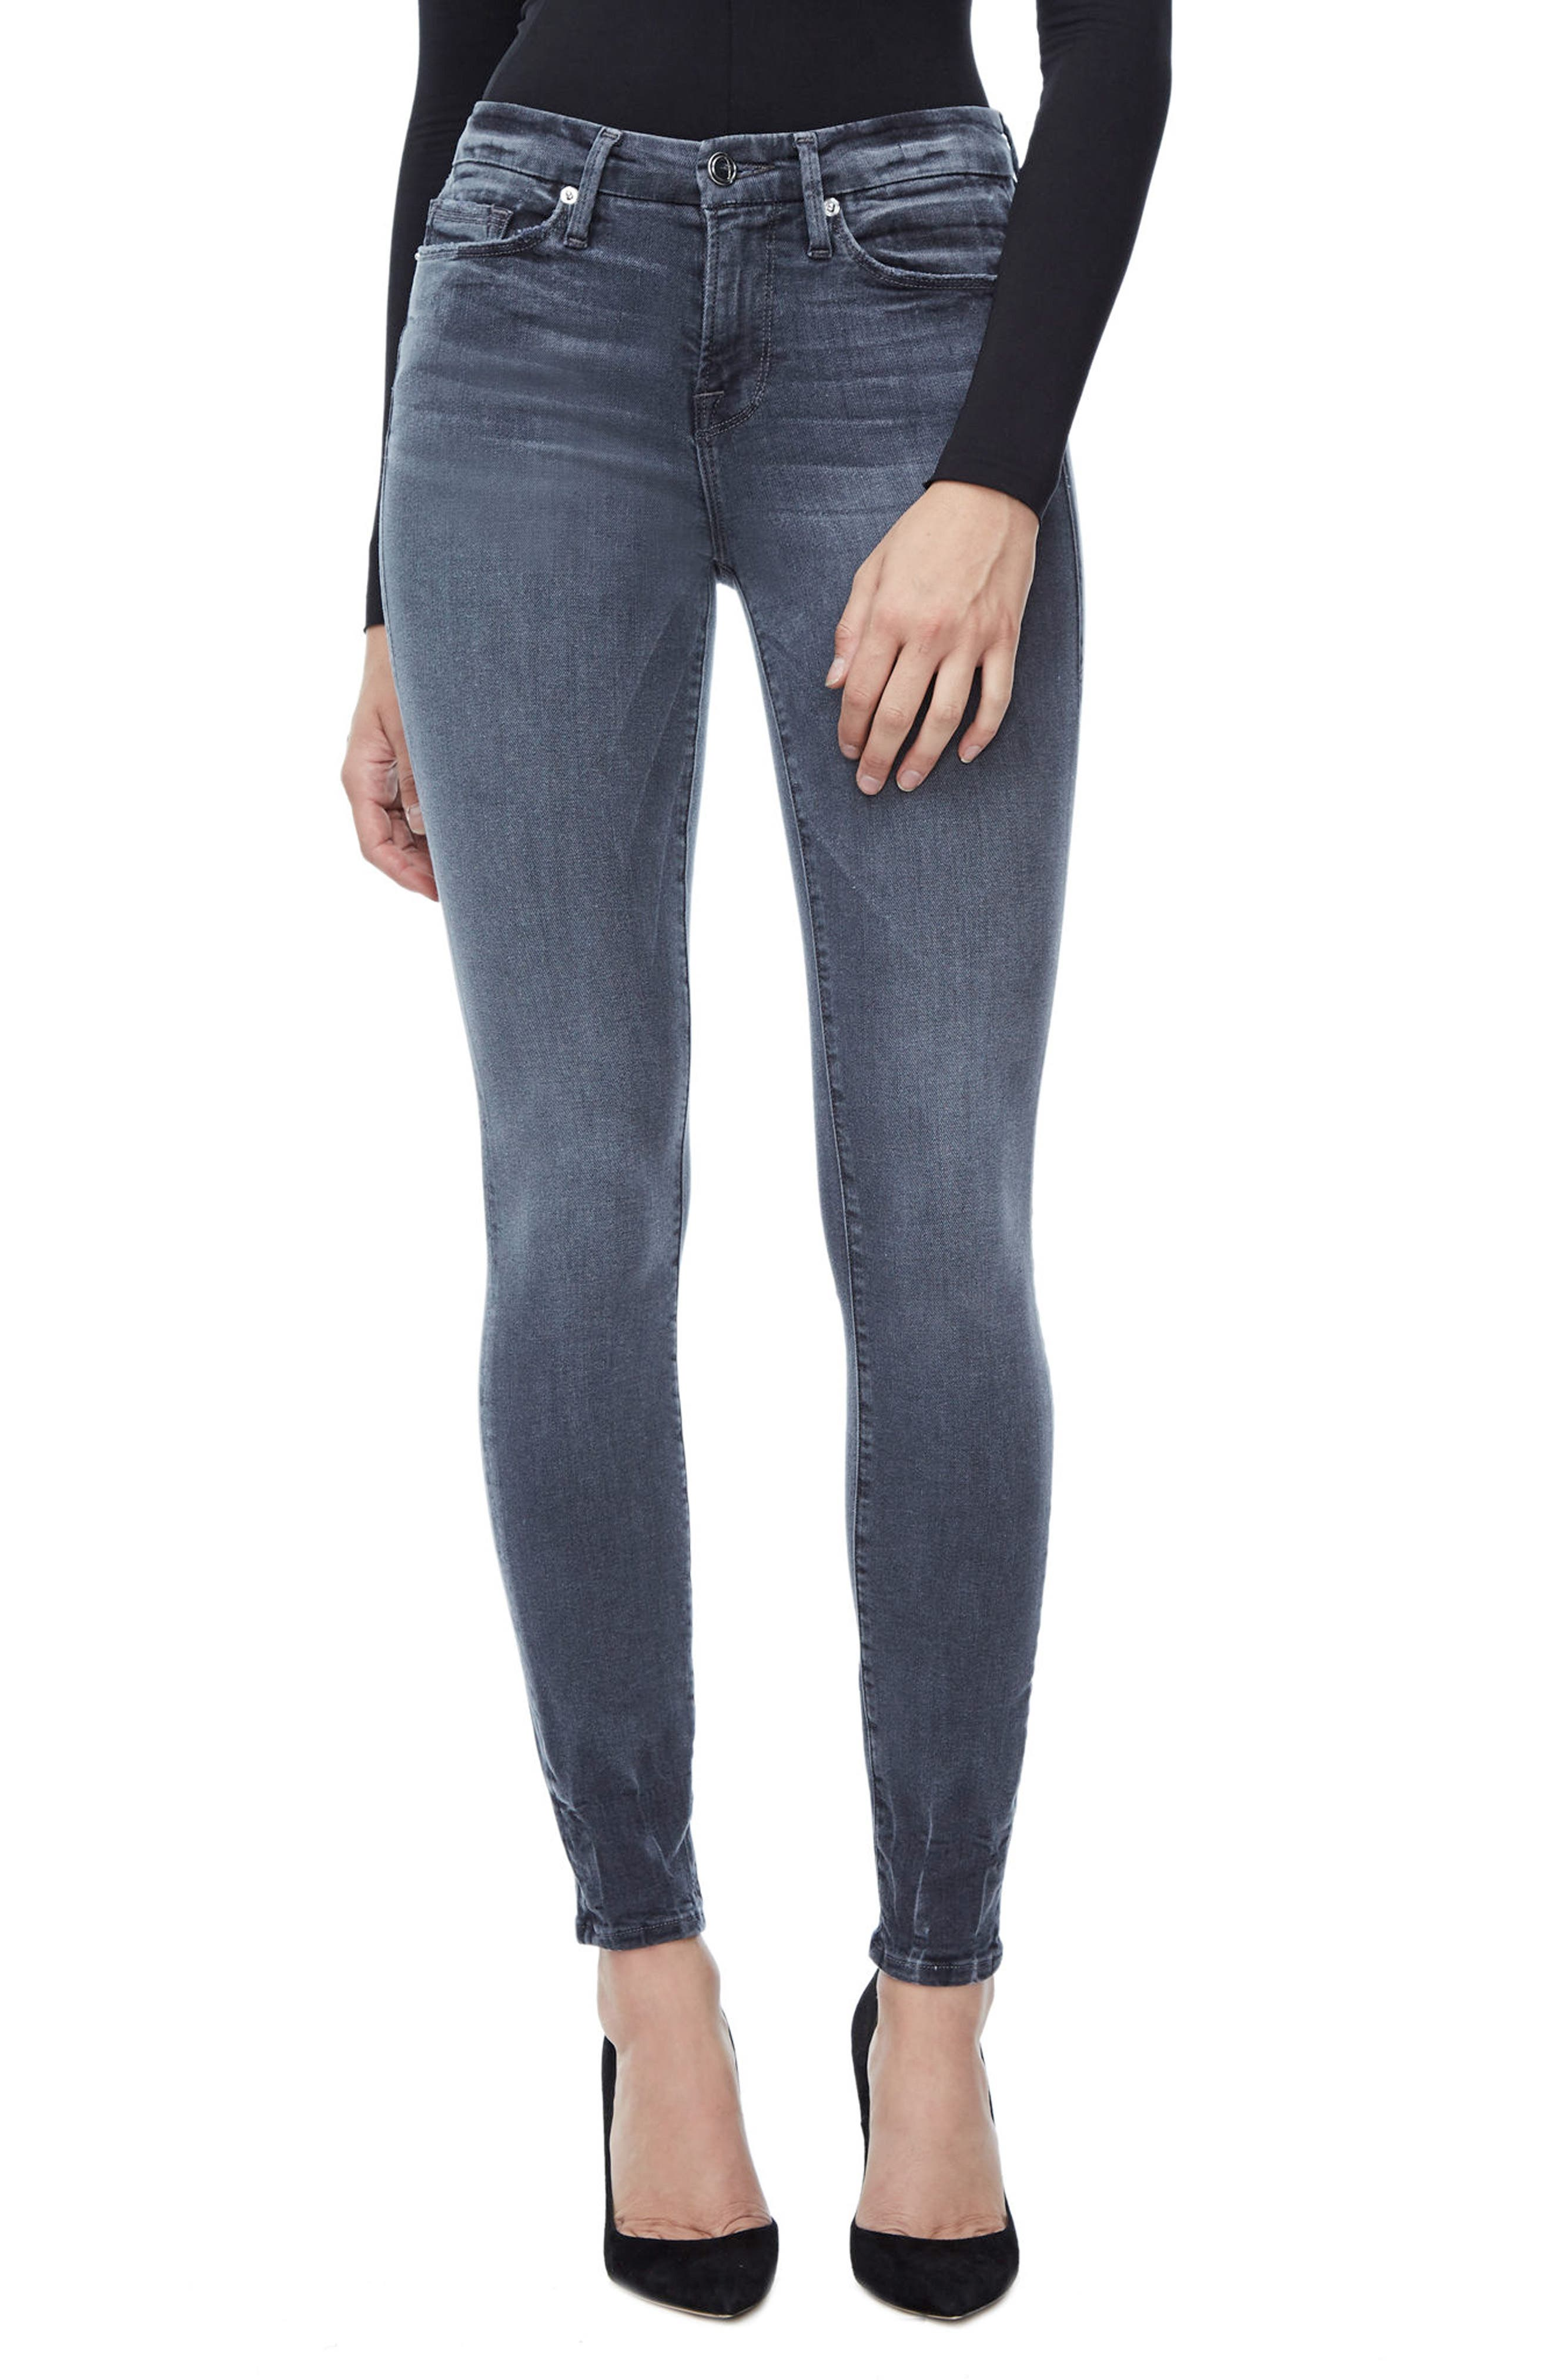 Alternate Image 1 Selected - Good American Good Legs High Waist Skinny Jeans (Grey 002) (Extended Sizes)